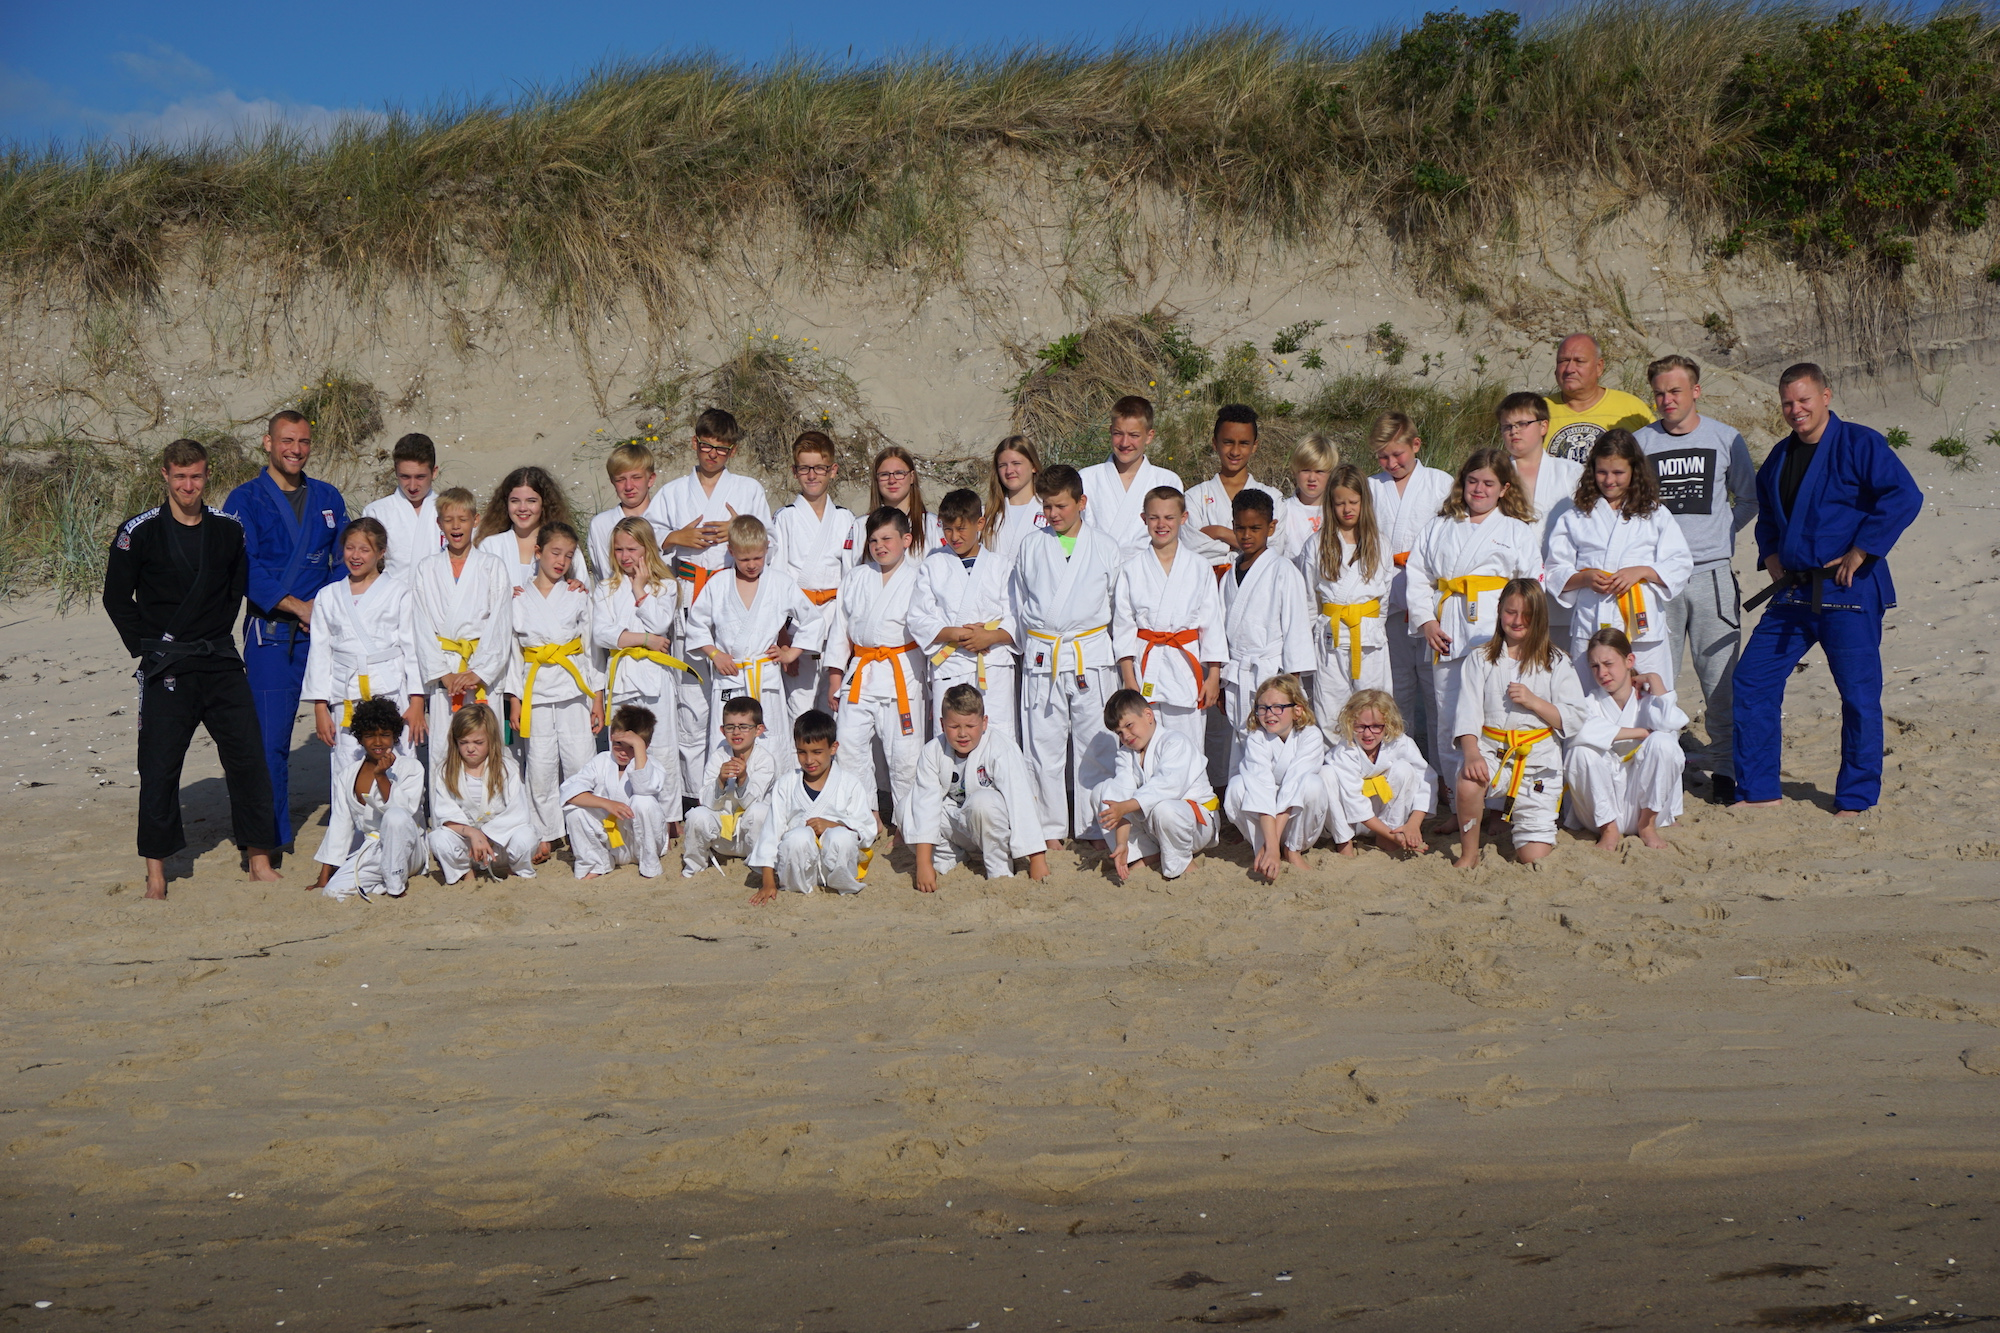 Traditionelles Ju-Jutsu Sommer-Trainingslager